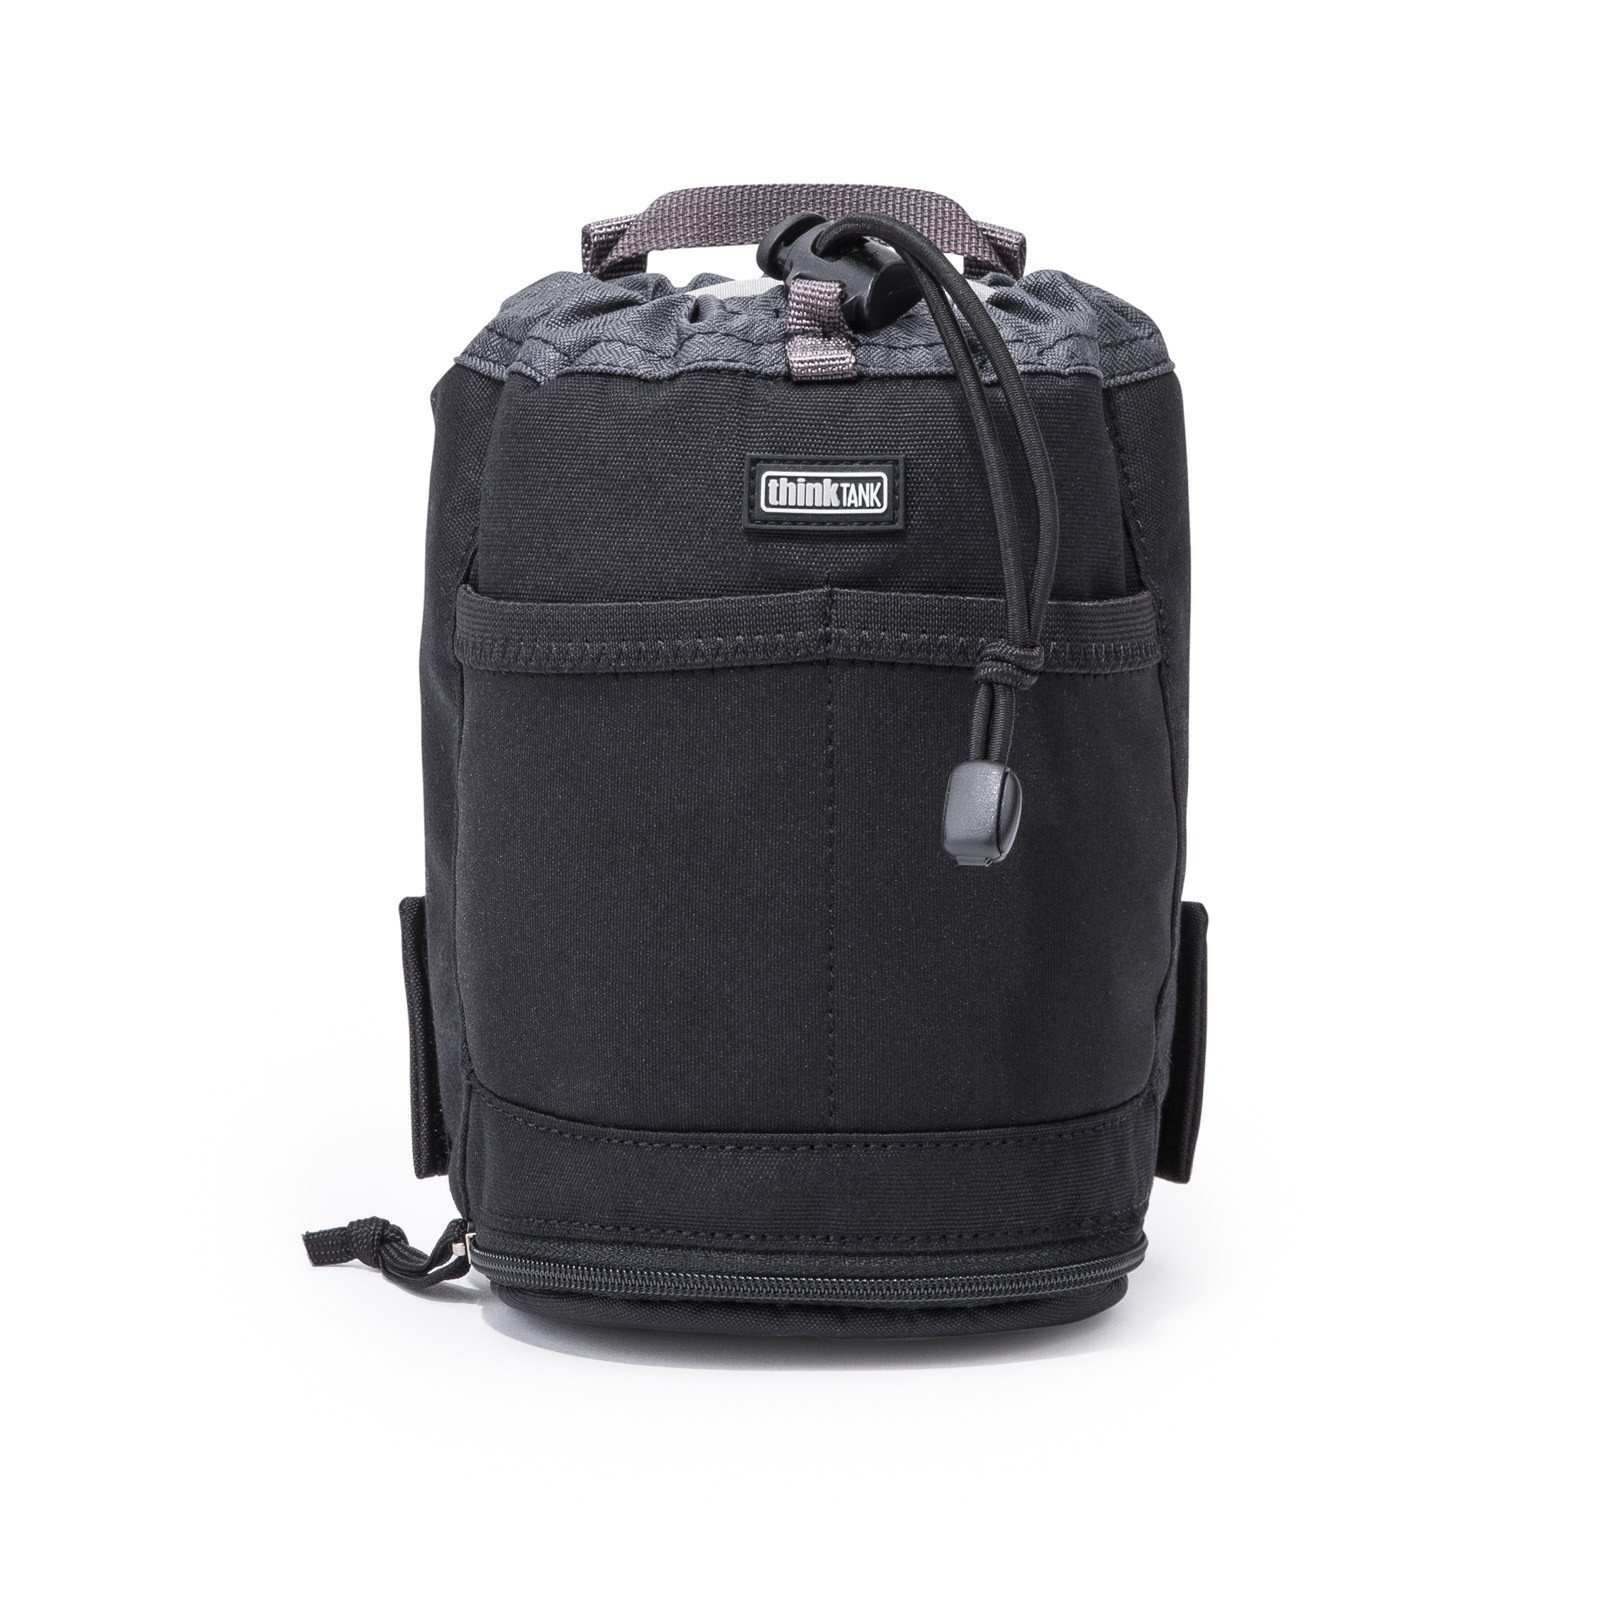 Think Tank Photo Lens Changer 25 V2.0 Lens Case (Black) by Think Tank